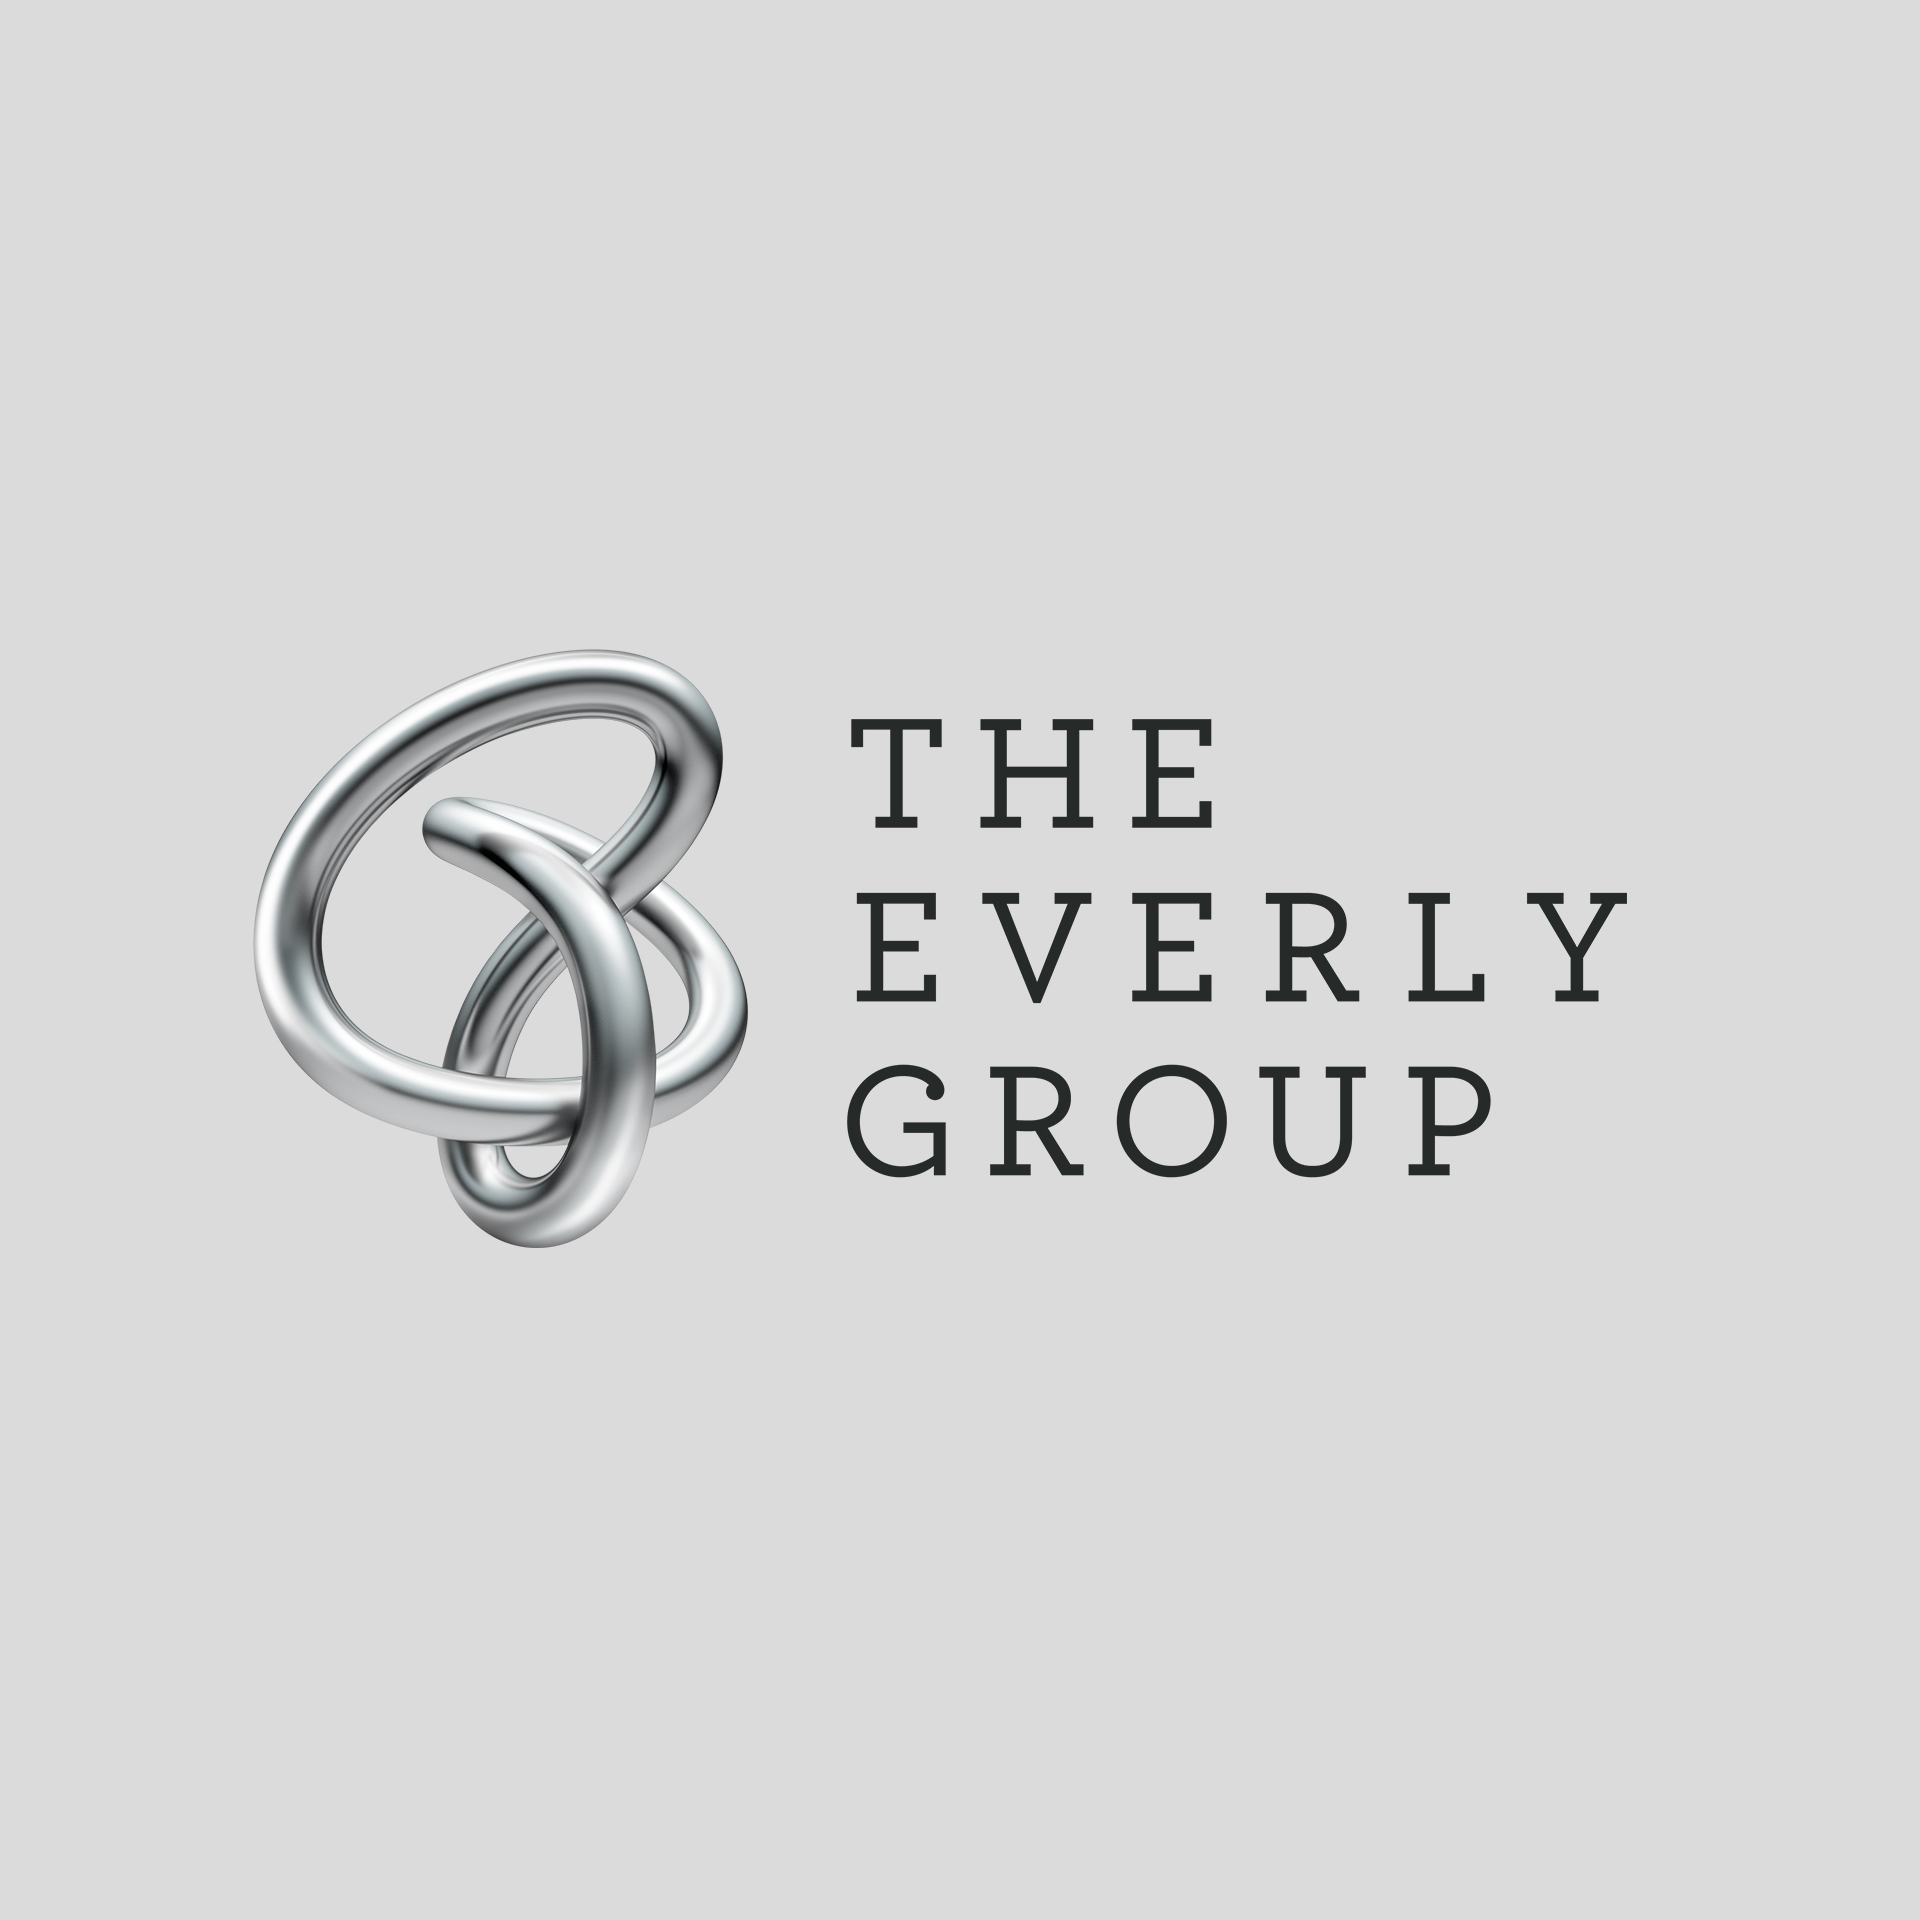 ES logo Everly sq.jpg